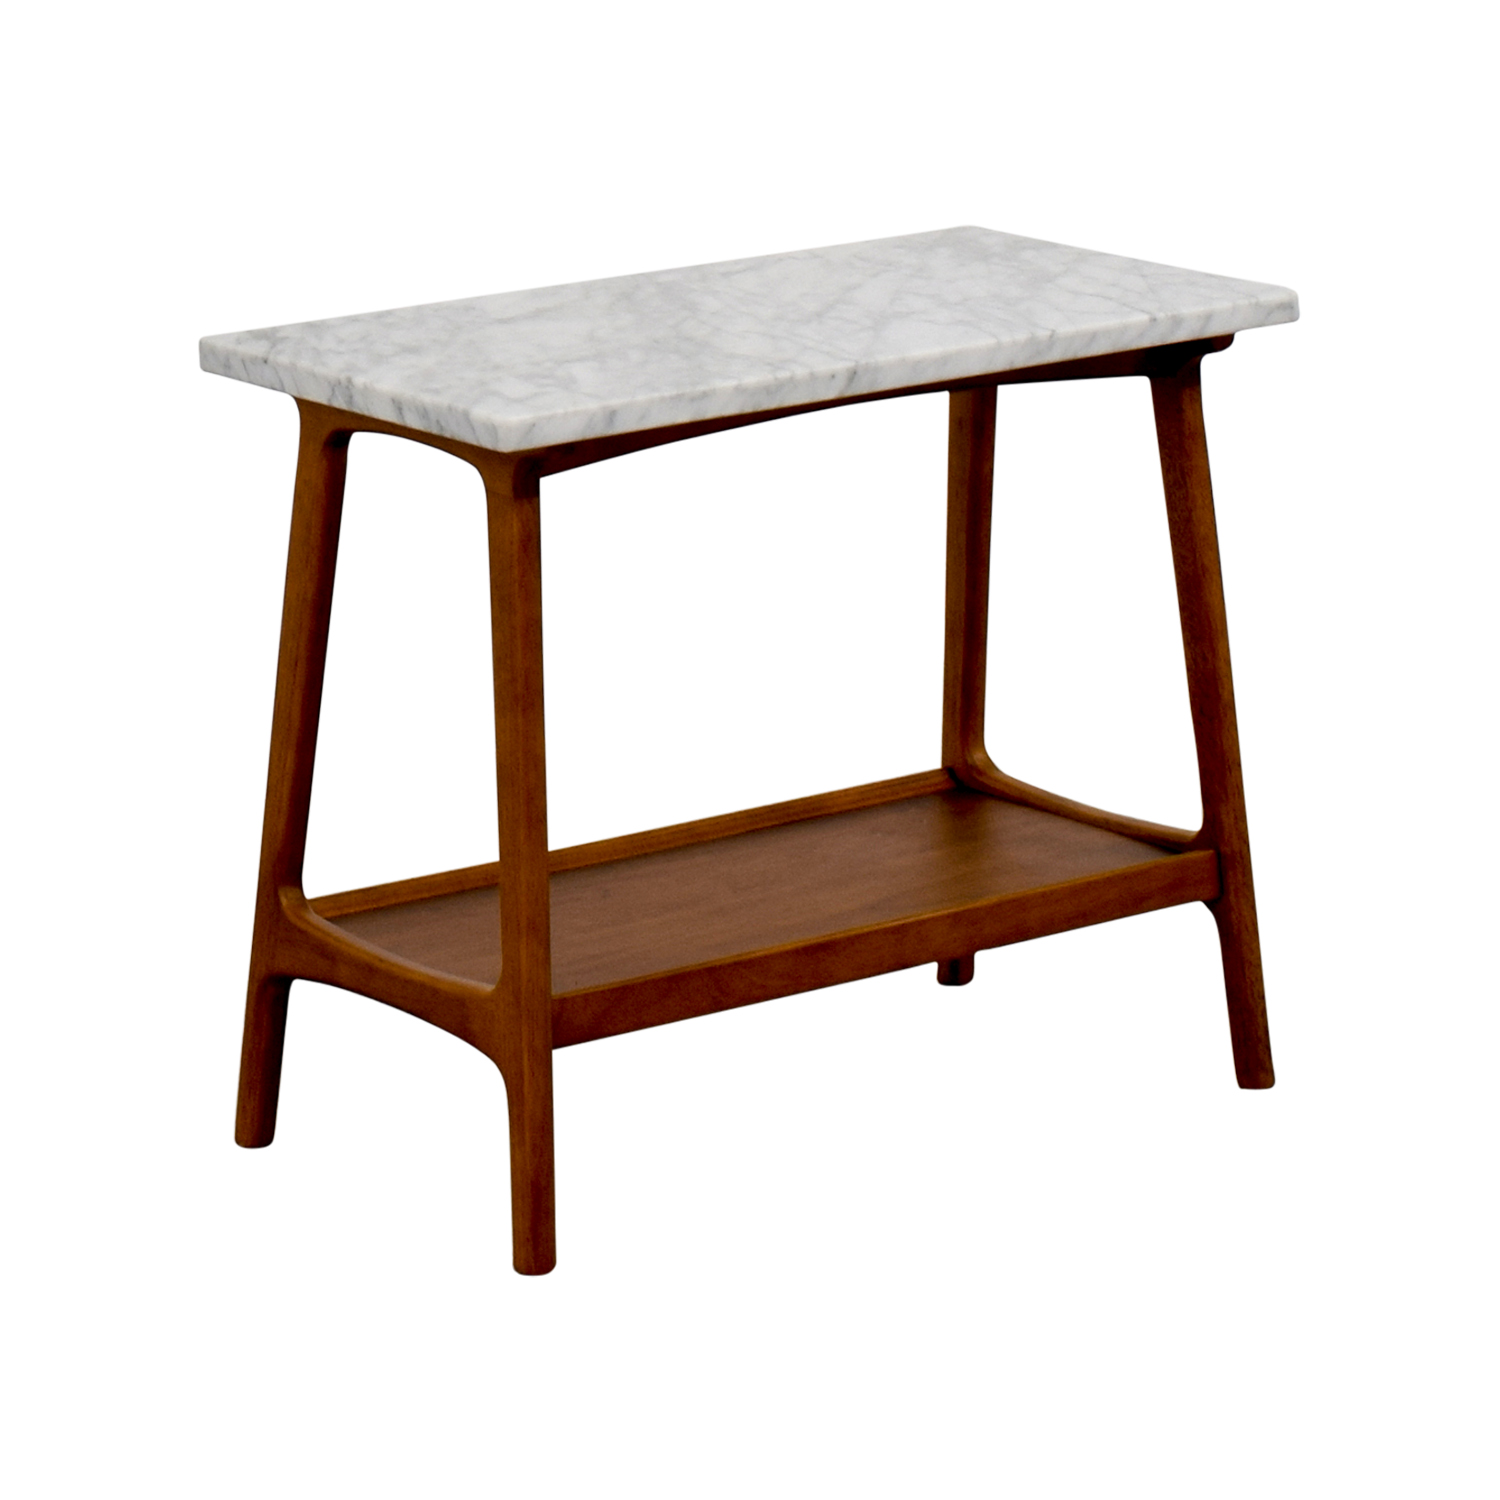 best service d3a36 68cd9 57% OFF - West Elm West Elm Reeve Marble & Walnut Side Table / Tables